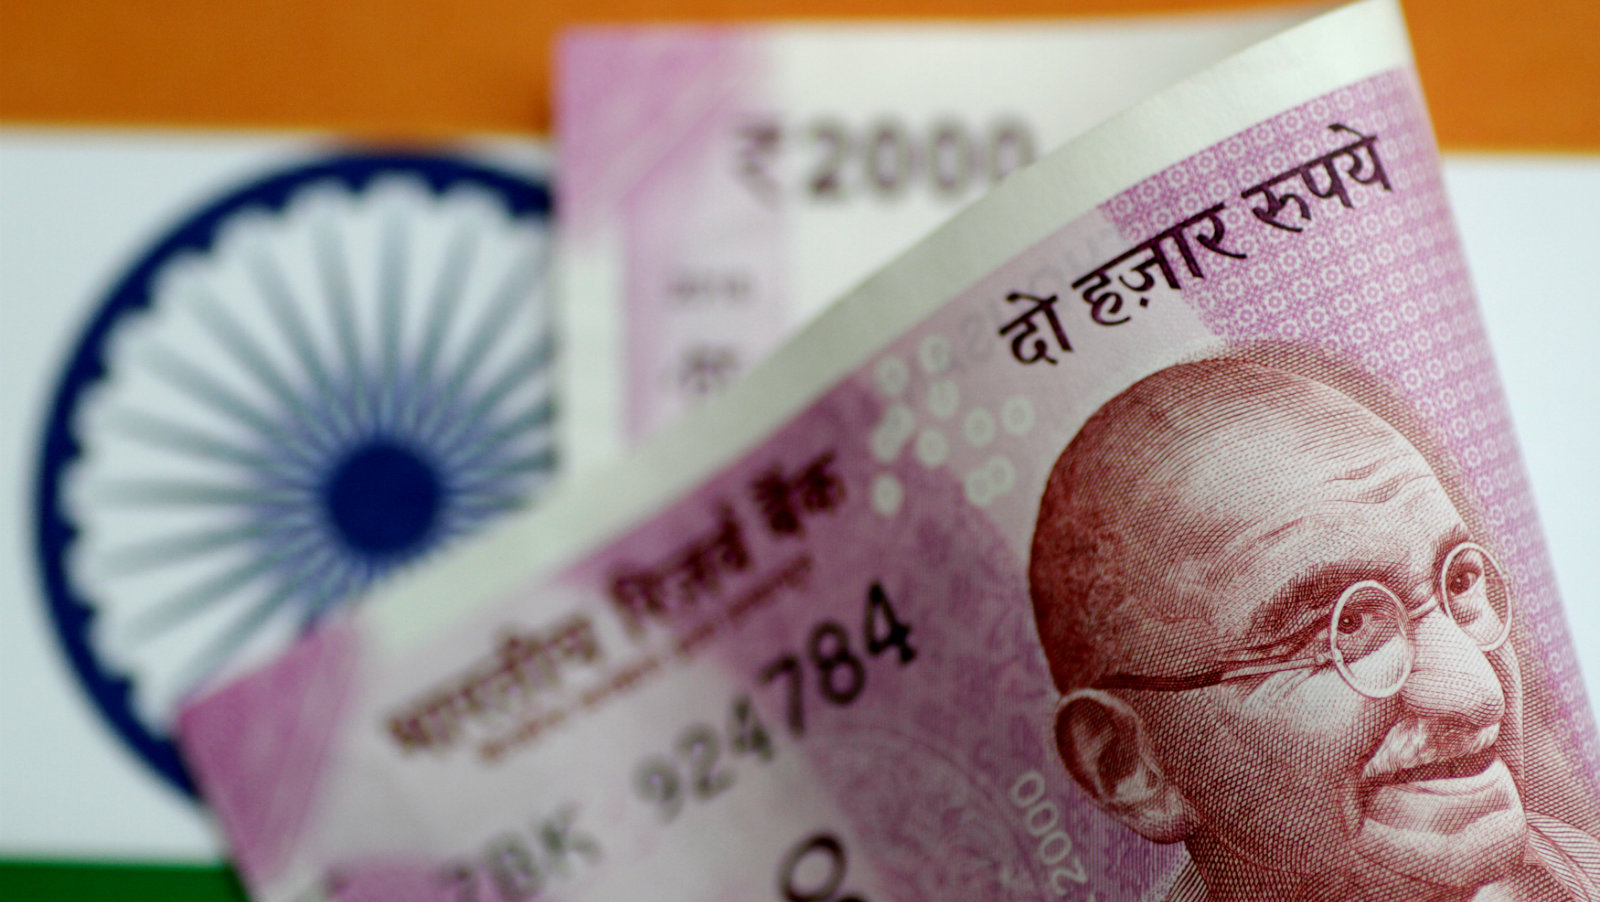 FILE PHOTO - Illustration photo of an India rupee note